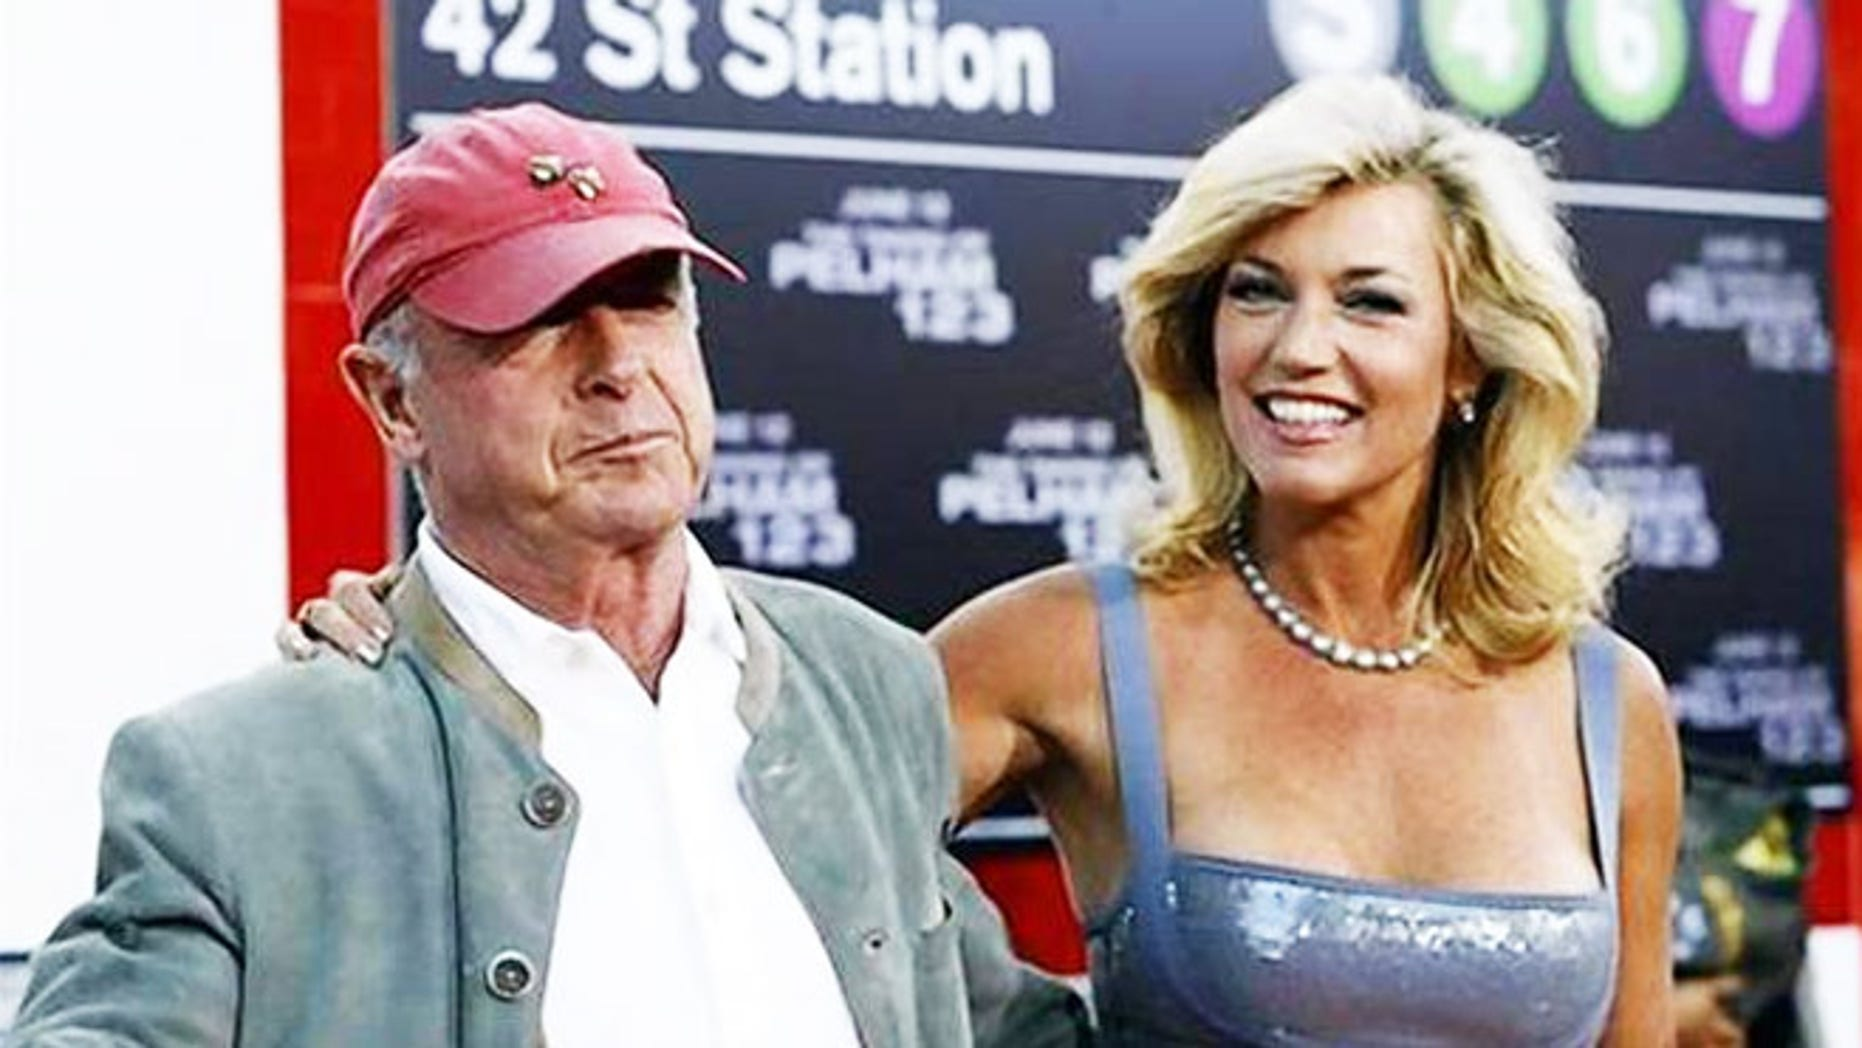 """Tony Scot and his wife Donna at the premiere of """"The Taking of Pelham 1 2 3."""""""